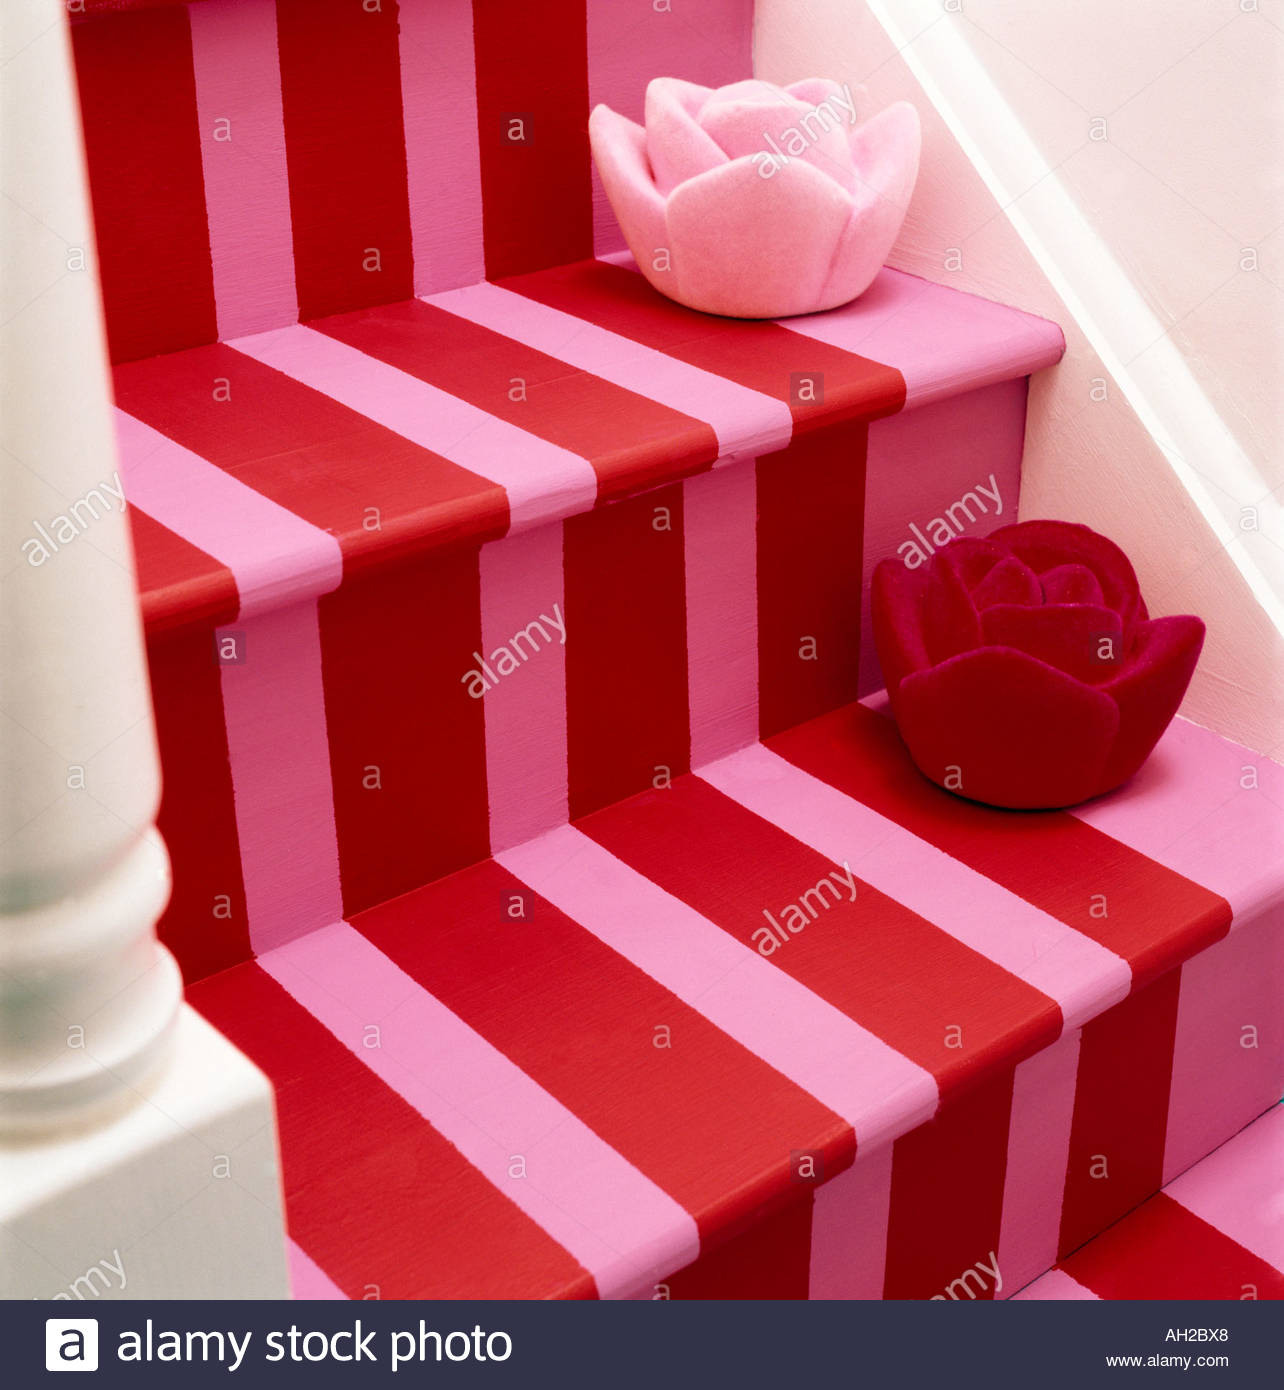 Painted staircase steps - Stock Image